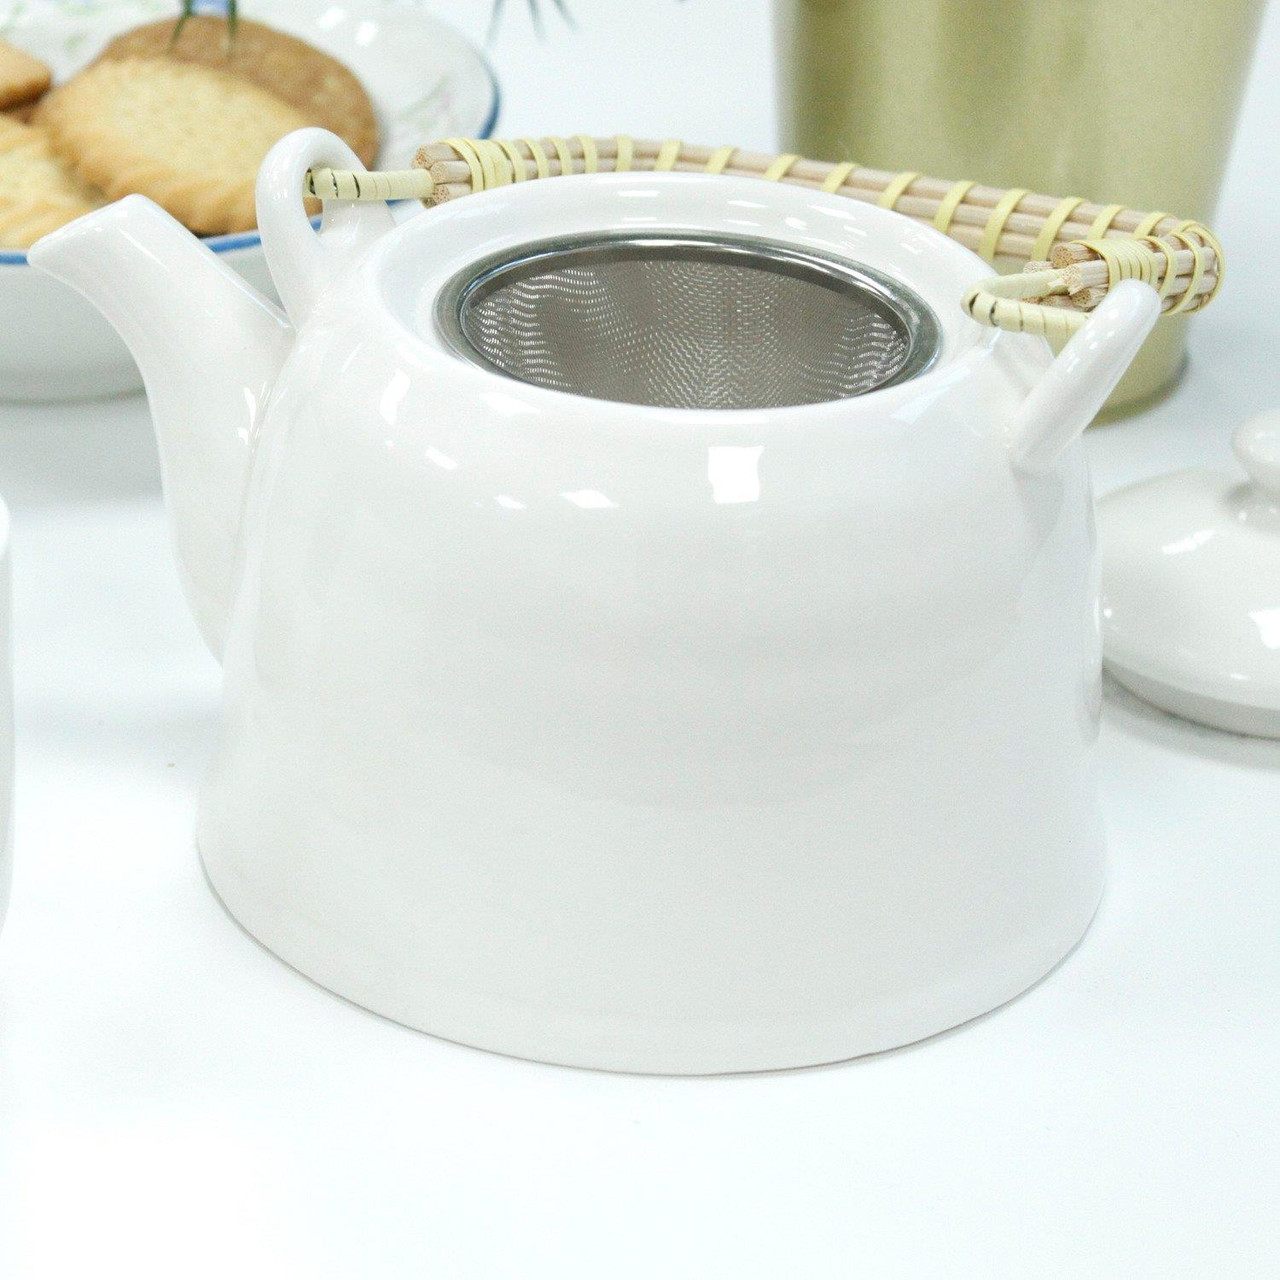 Chinese Herbal Tea Set - Classic White - 6 Cups and Infuser - Boxed